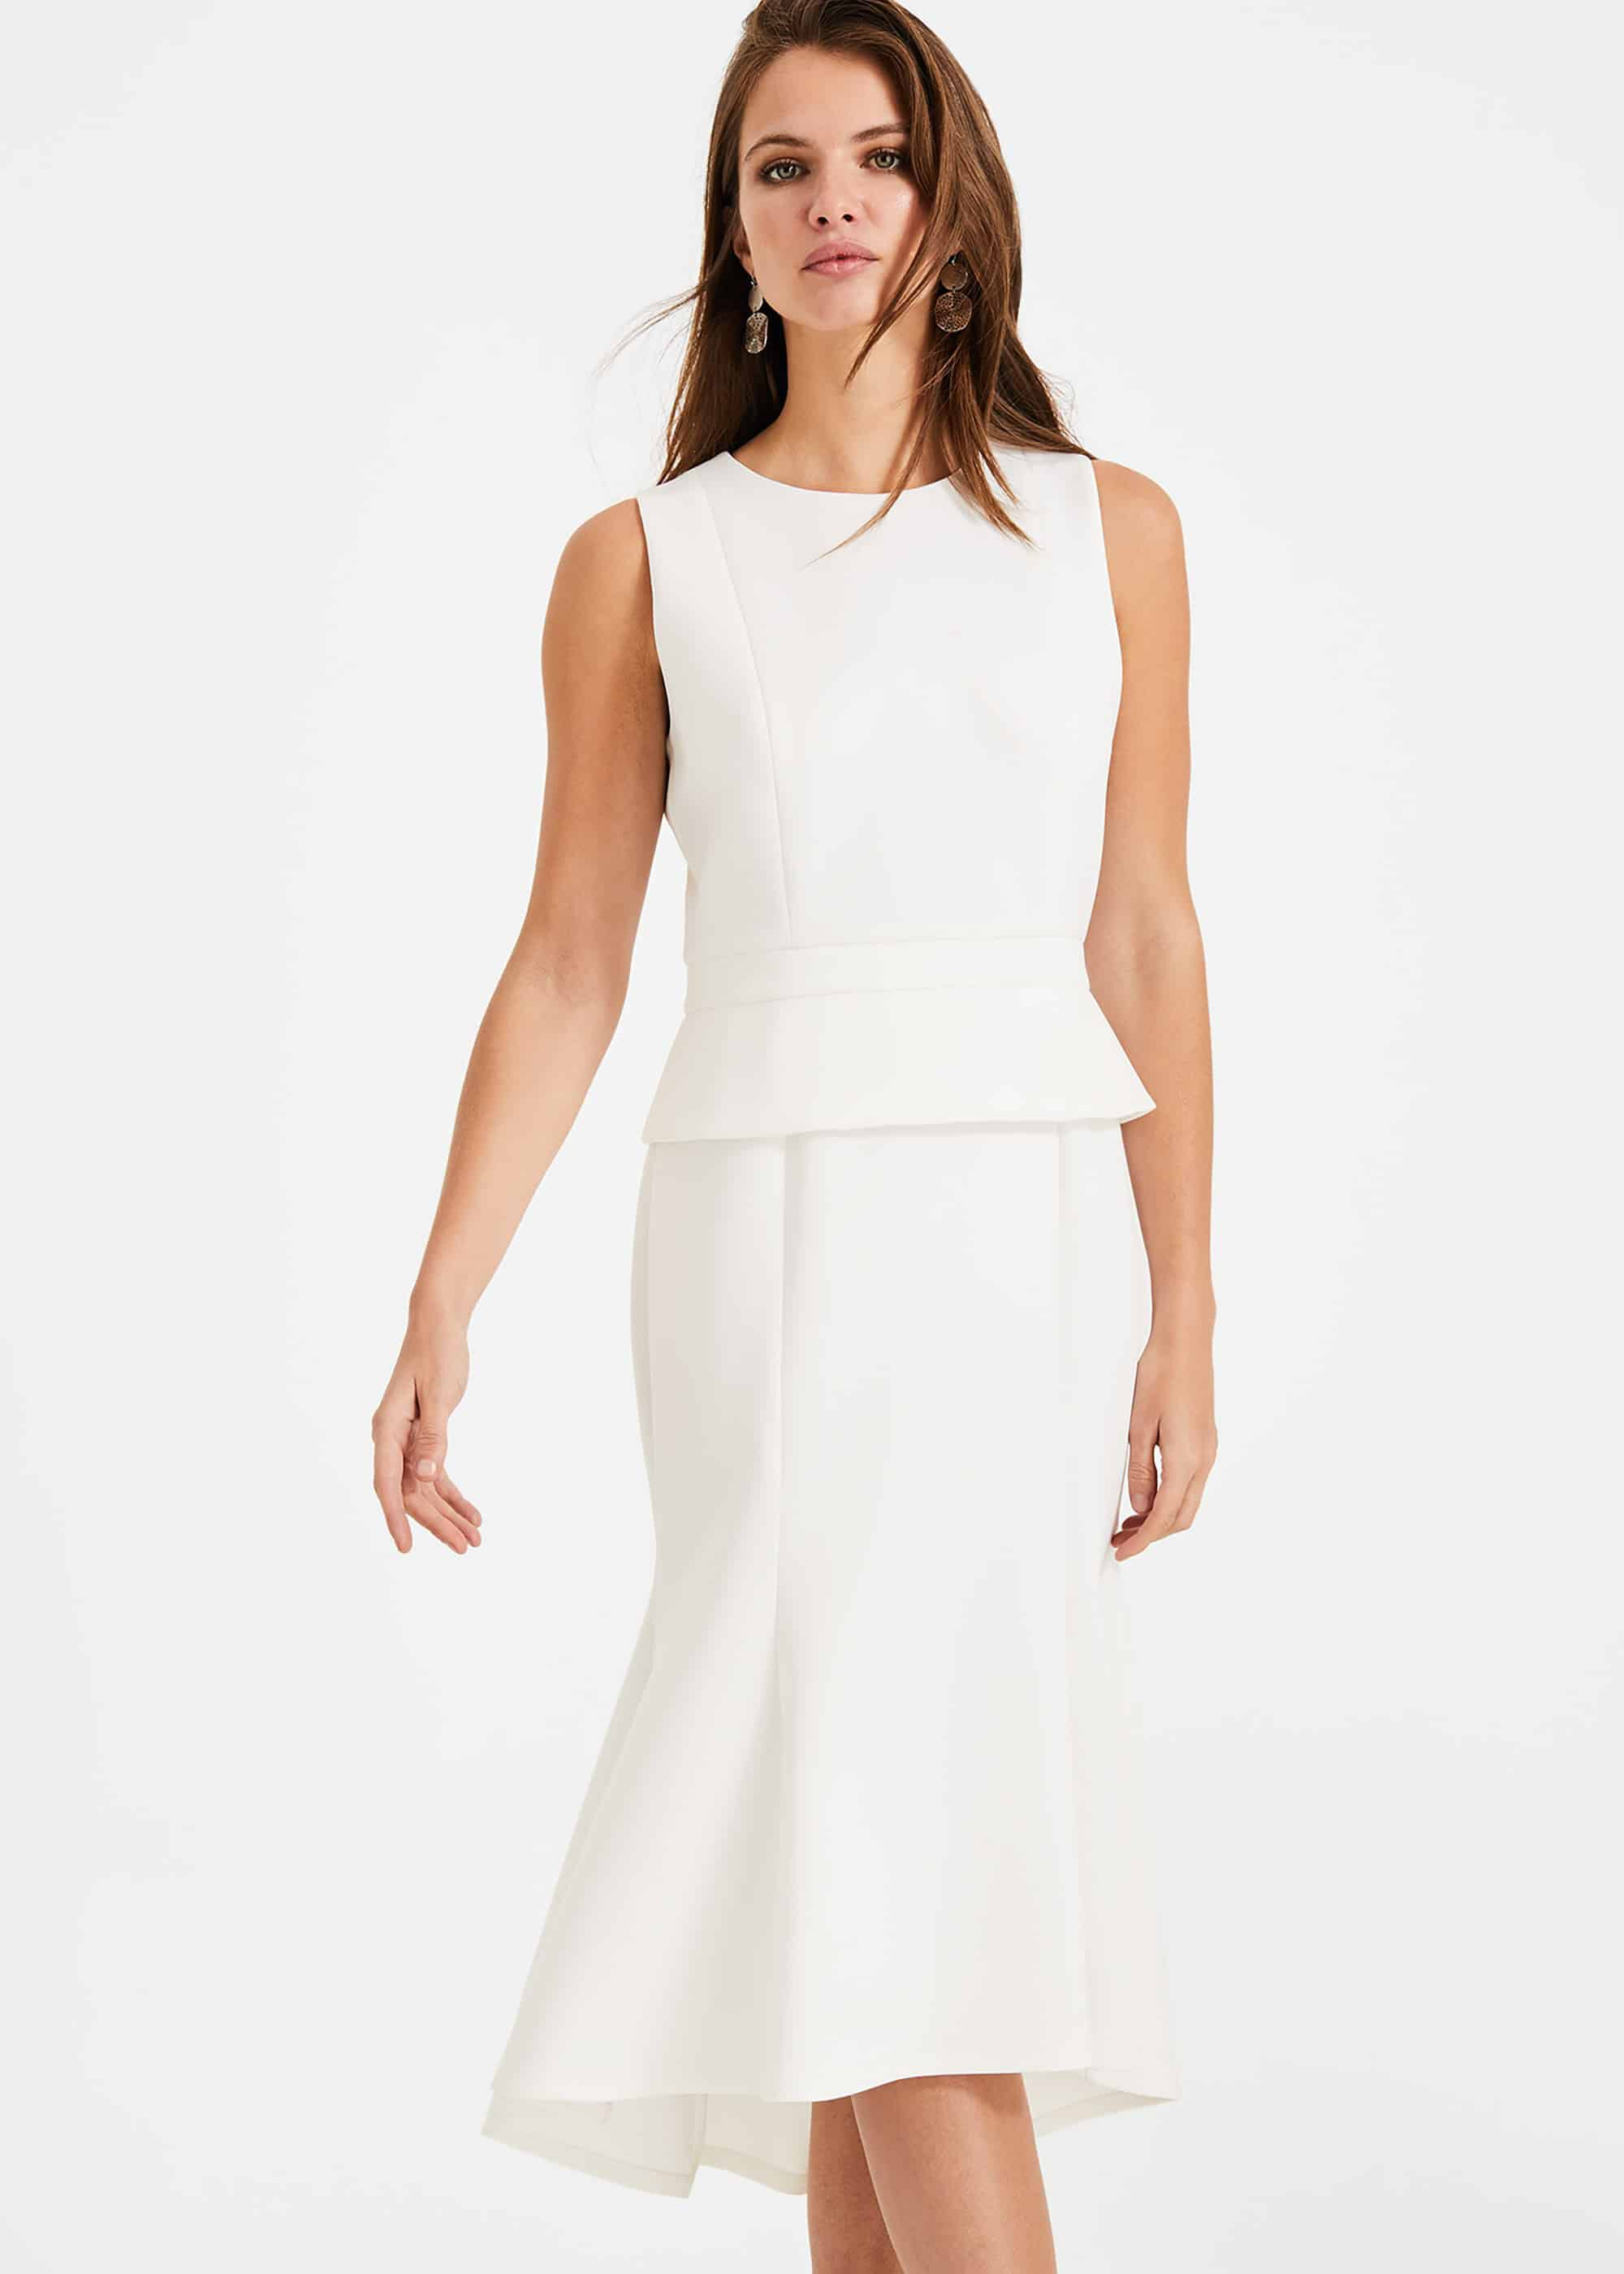 Phase Eight Kerry Peplum Dress, Cream, Fit & Flare